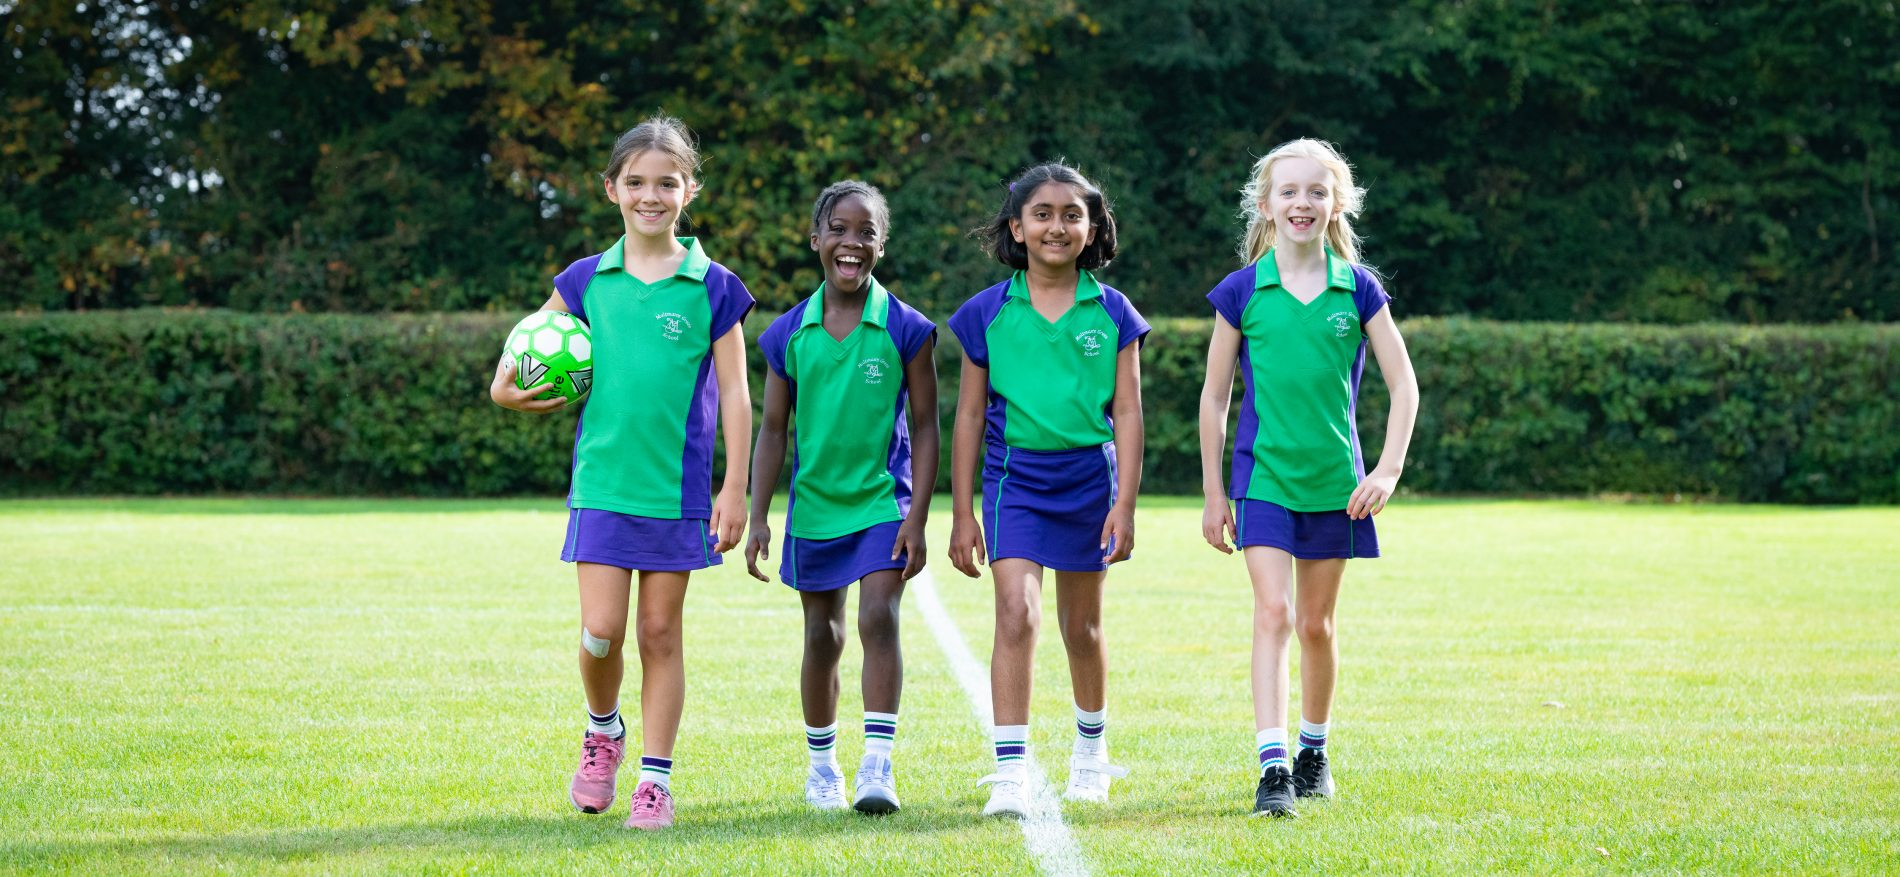 4 students with one holding a football walking along the pitch